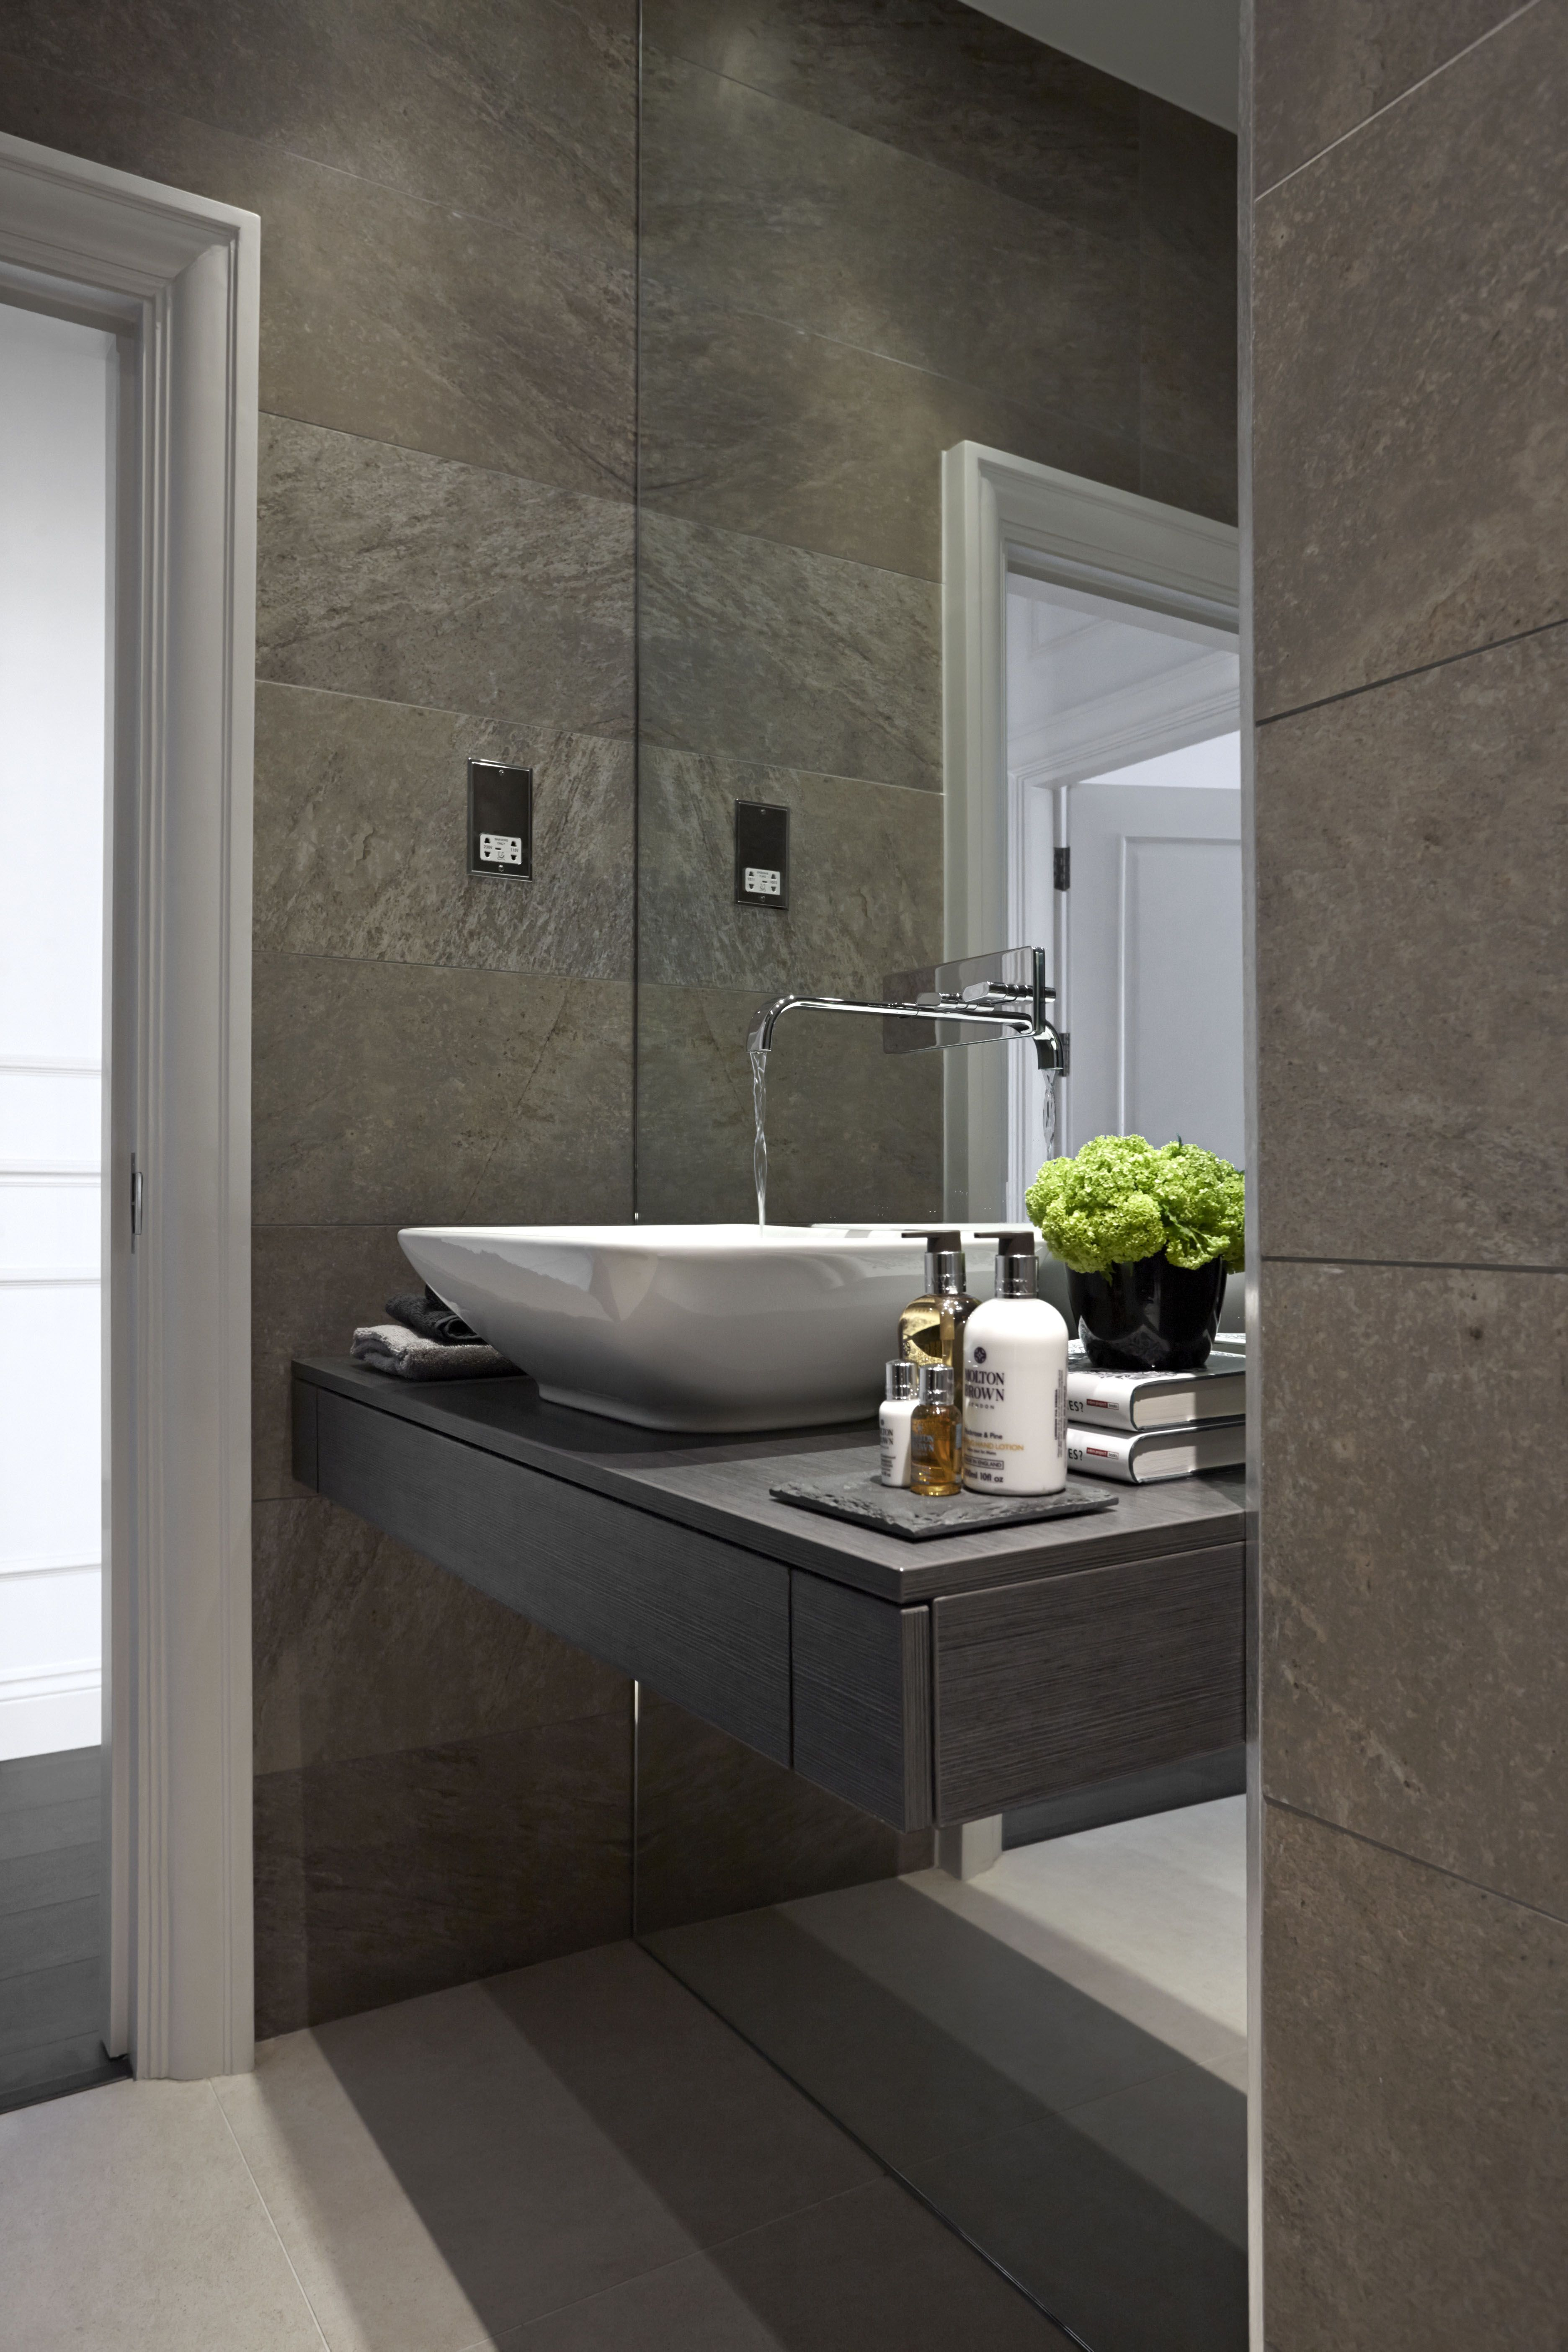 Downstairs Cloakroom: Porcelanosa Arizona Tiles. Floating Bauhaus Vanity  Shelf With Drawer And Counter Top Mounted Basin. Wall Tap Mounted On Full  Width ...